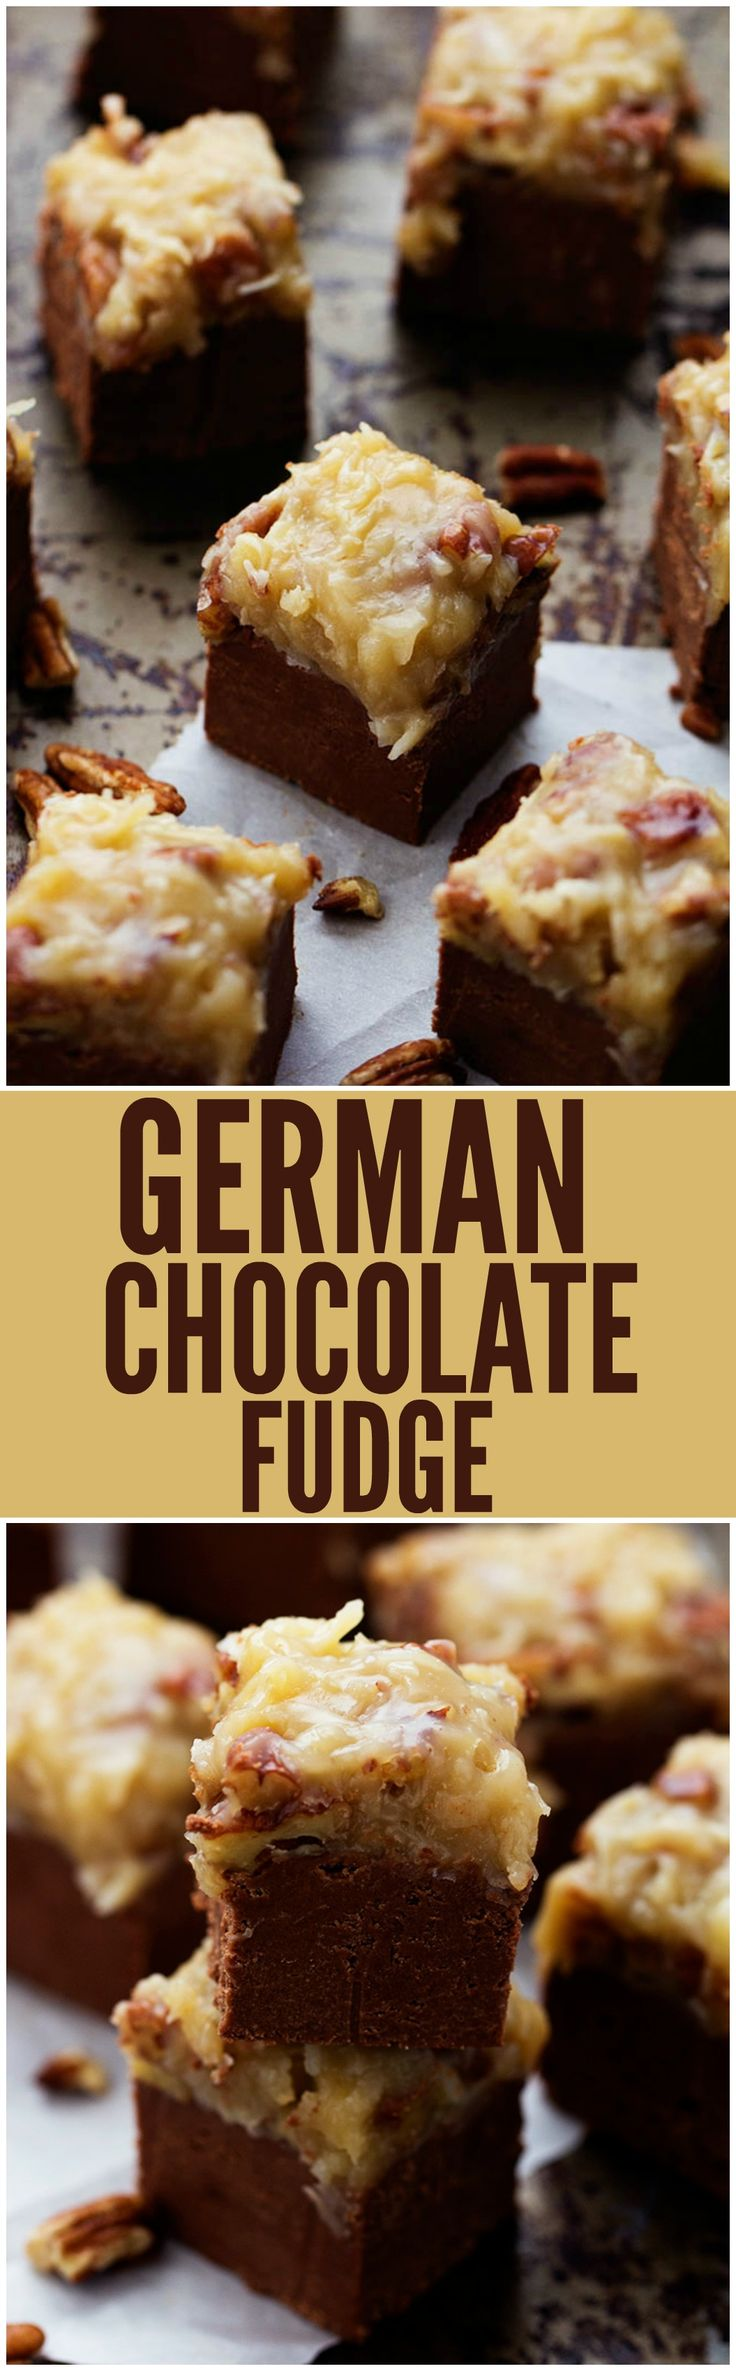 A quick and easy chocolate fudge that doesn't require a thermometer. Topped with the signature coconut pecan frosting, this fudge is out of this world!